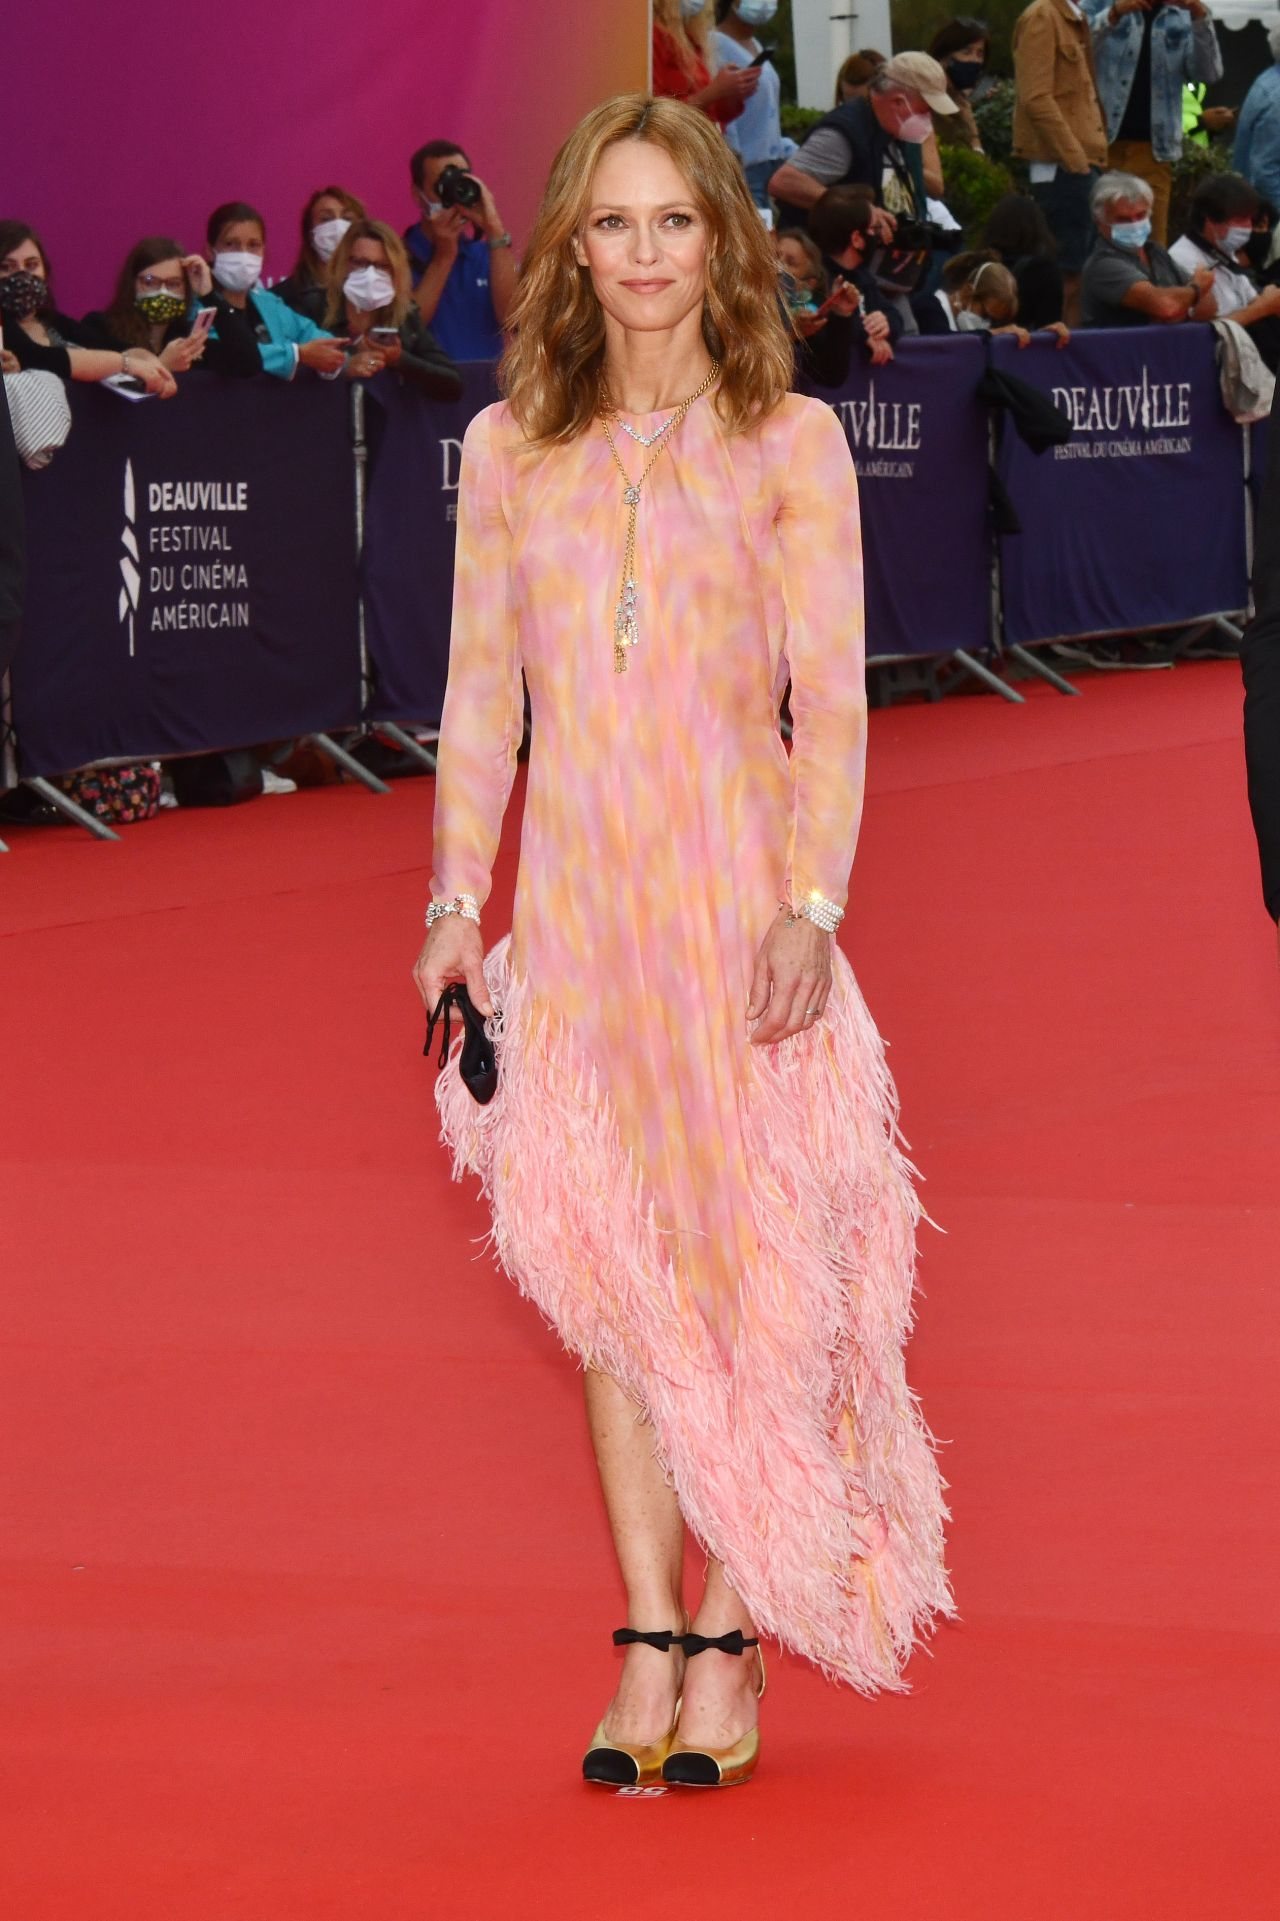 vanessa-paradis-in-chanel-the-deauville-american-film-festival-opening-ceremony